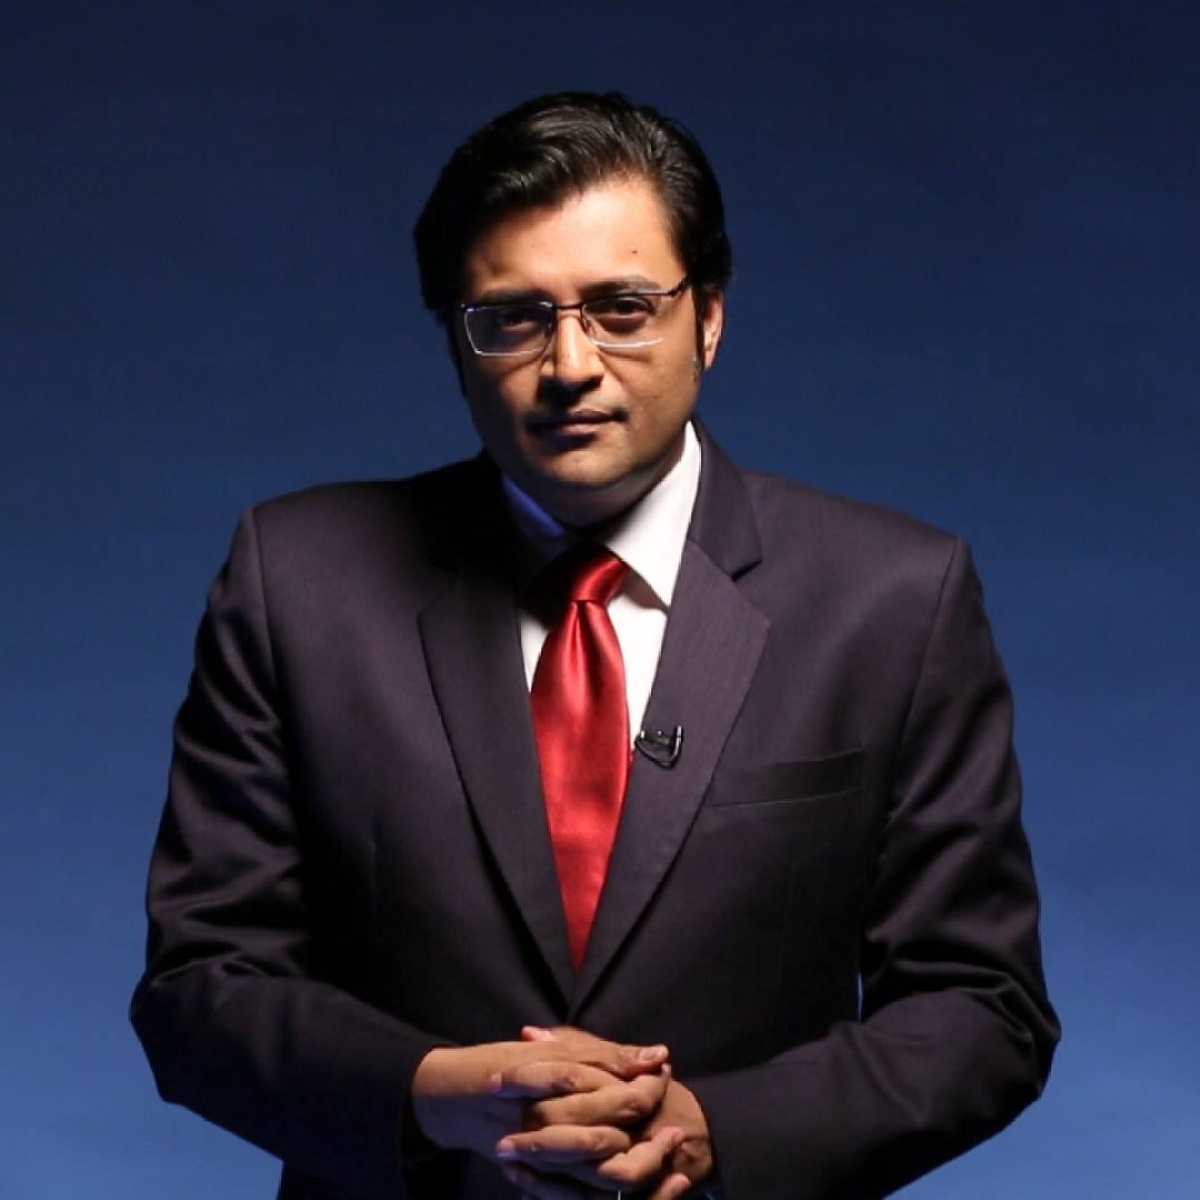 Mumbai Police summons Republic TV's Arnab Goswami to appear before them today